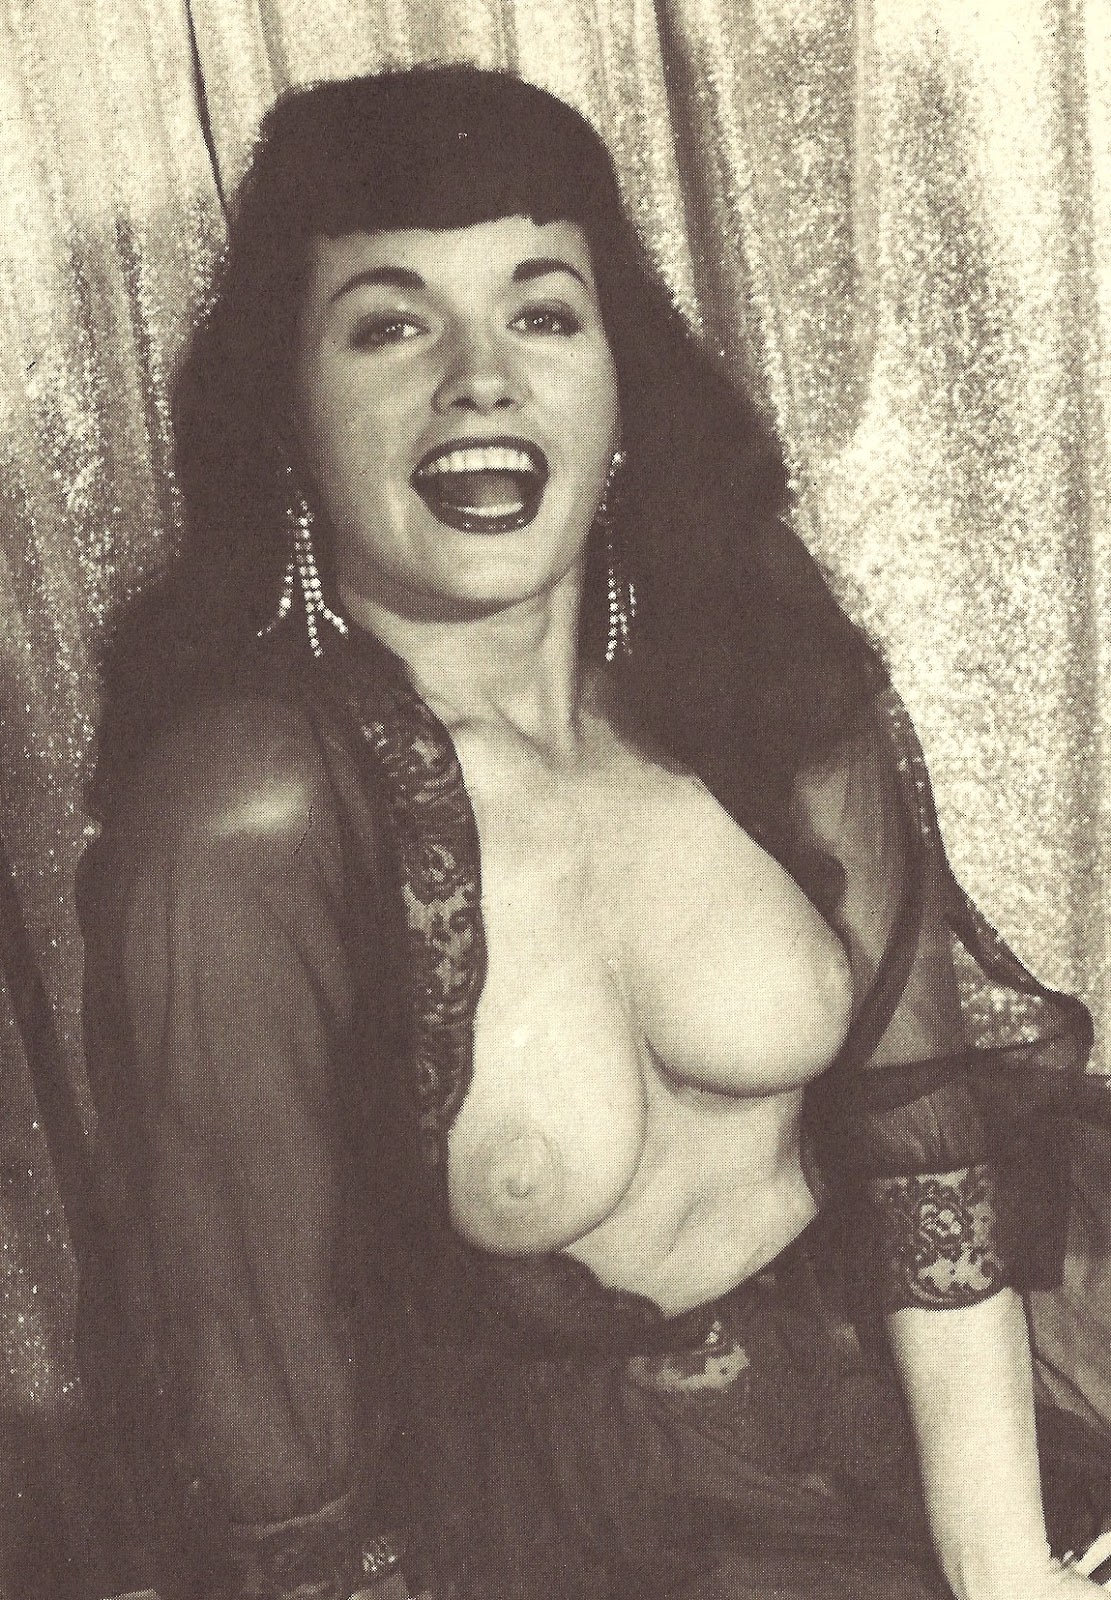 Bettie page nude pics